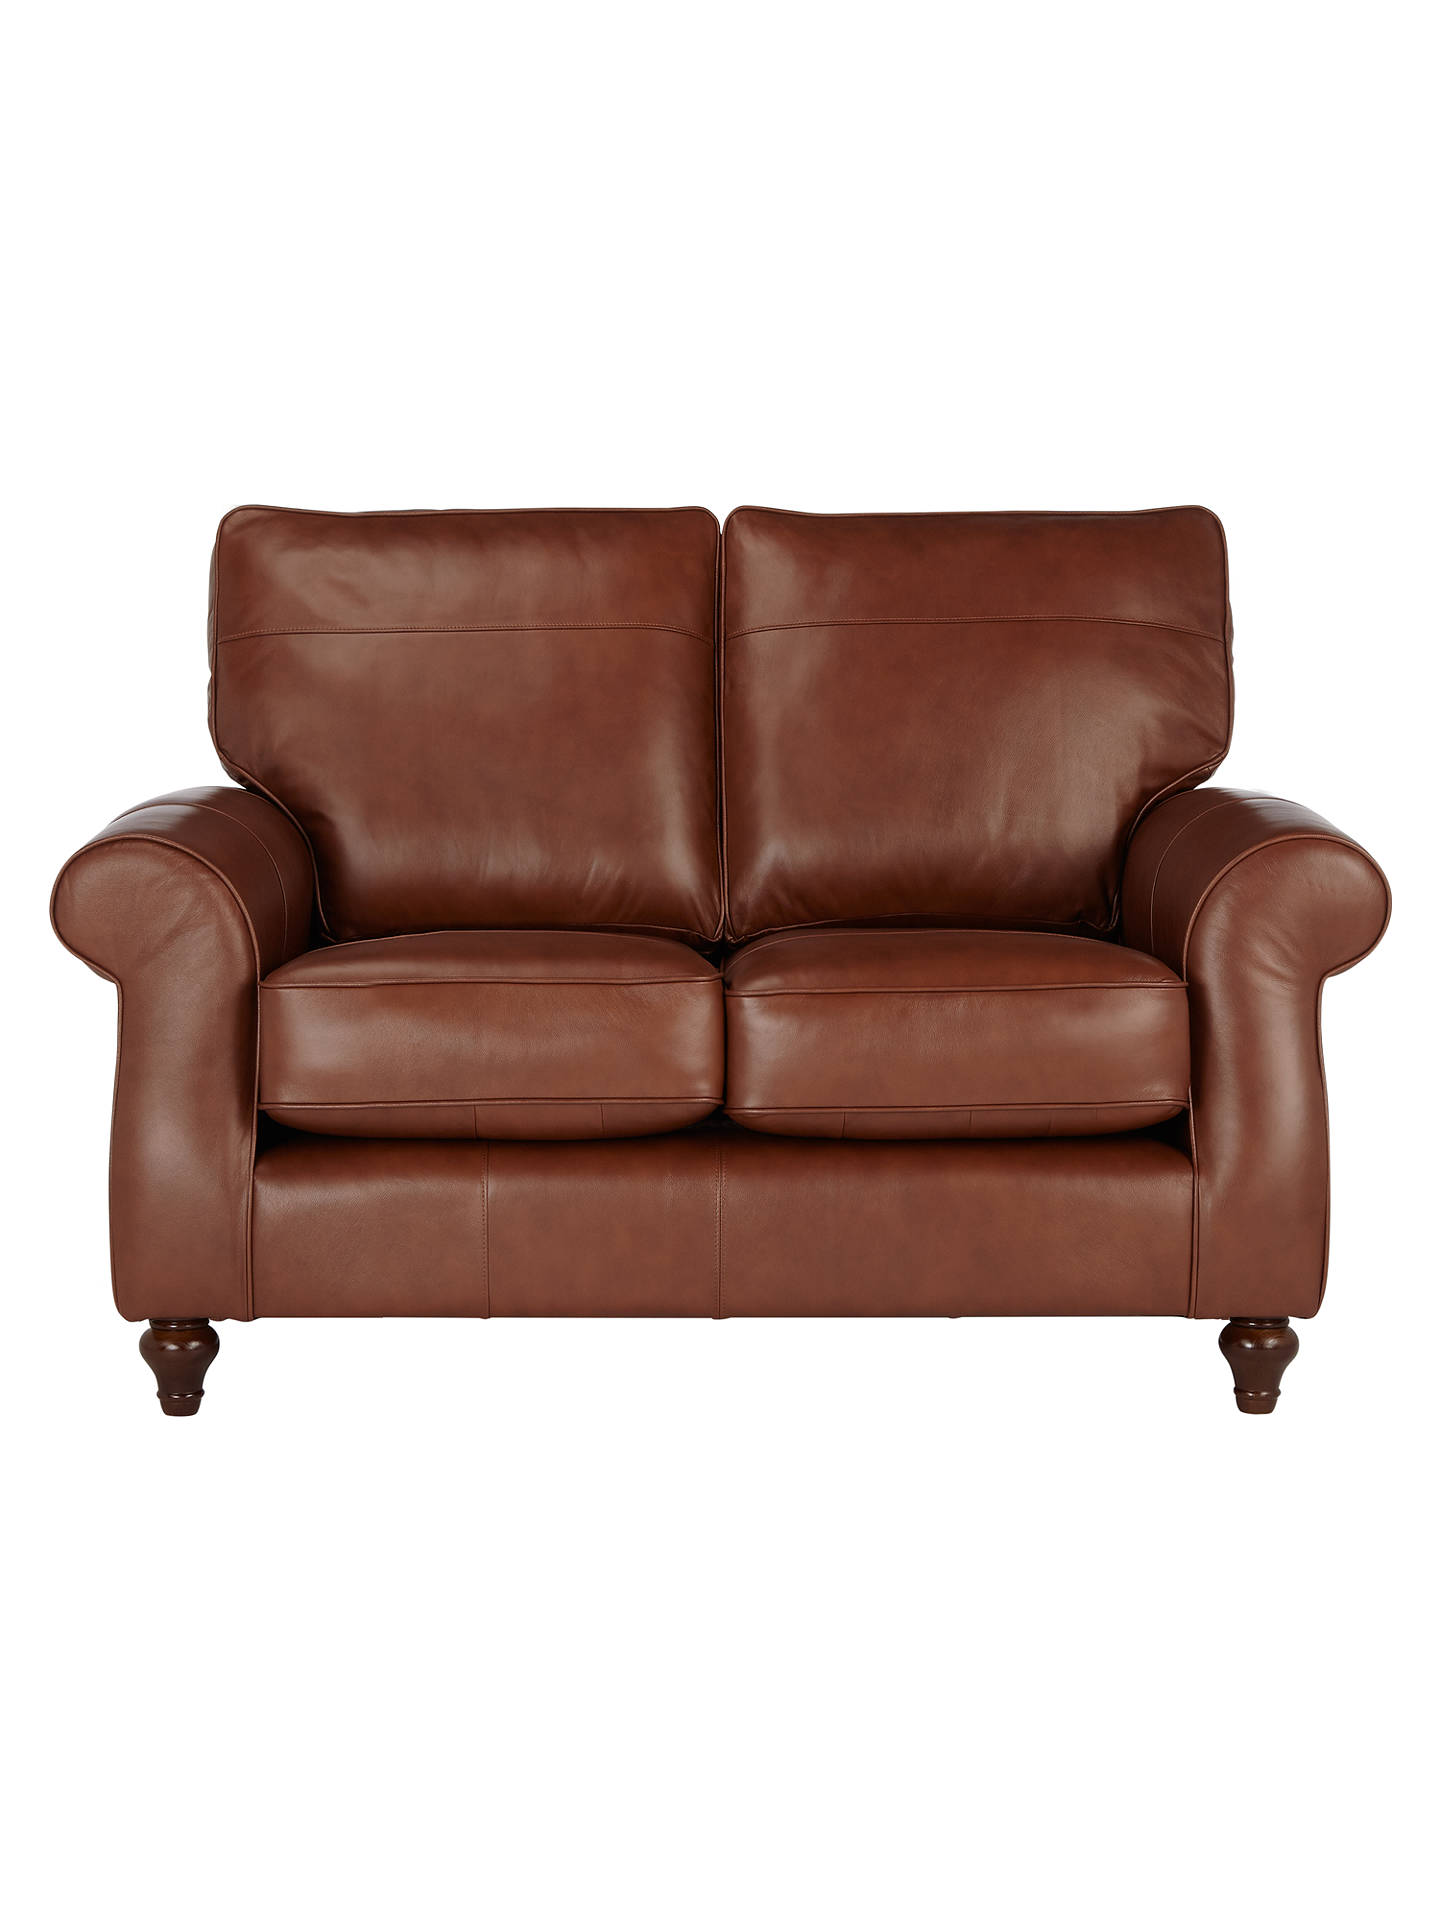 John Lewis Hannah Small 2 Seater Leather Sofa Dark Leg Contempo Castanga Online At